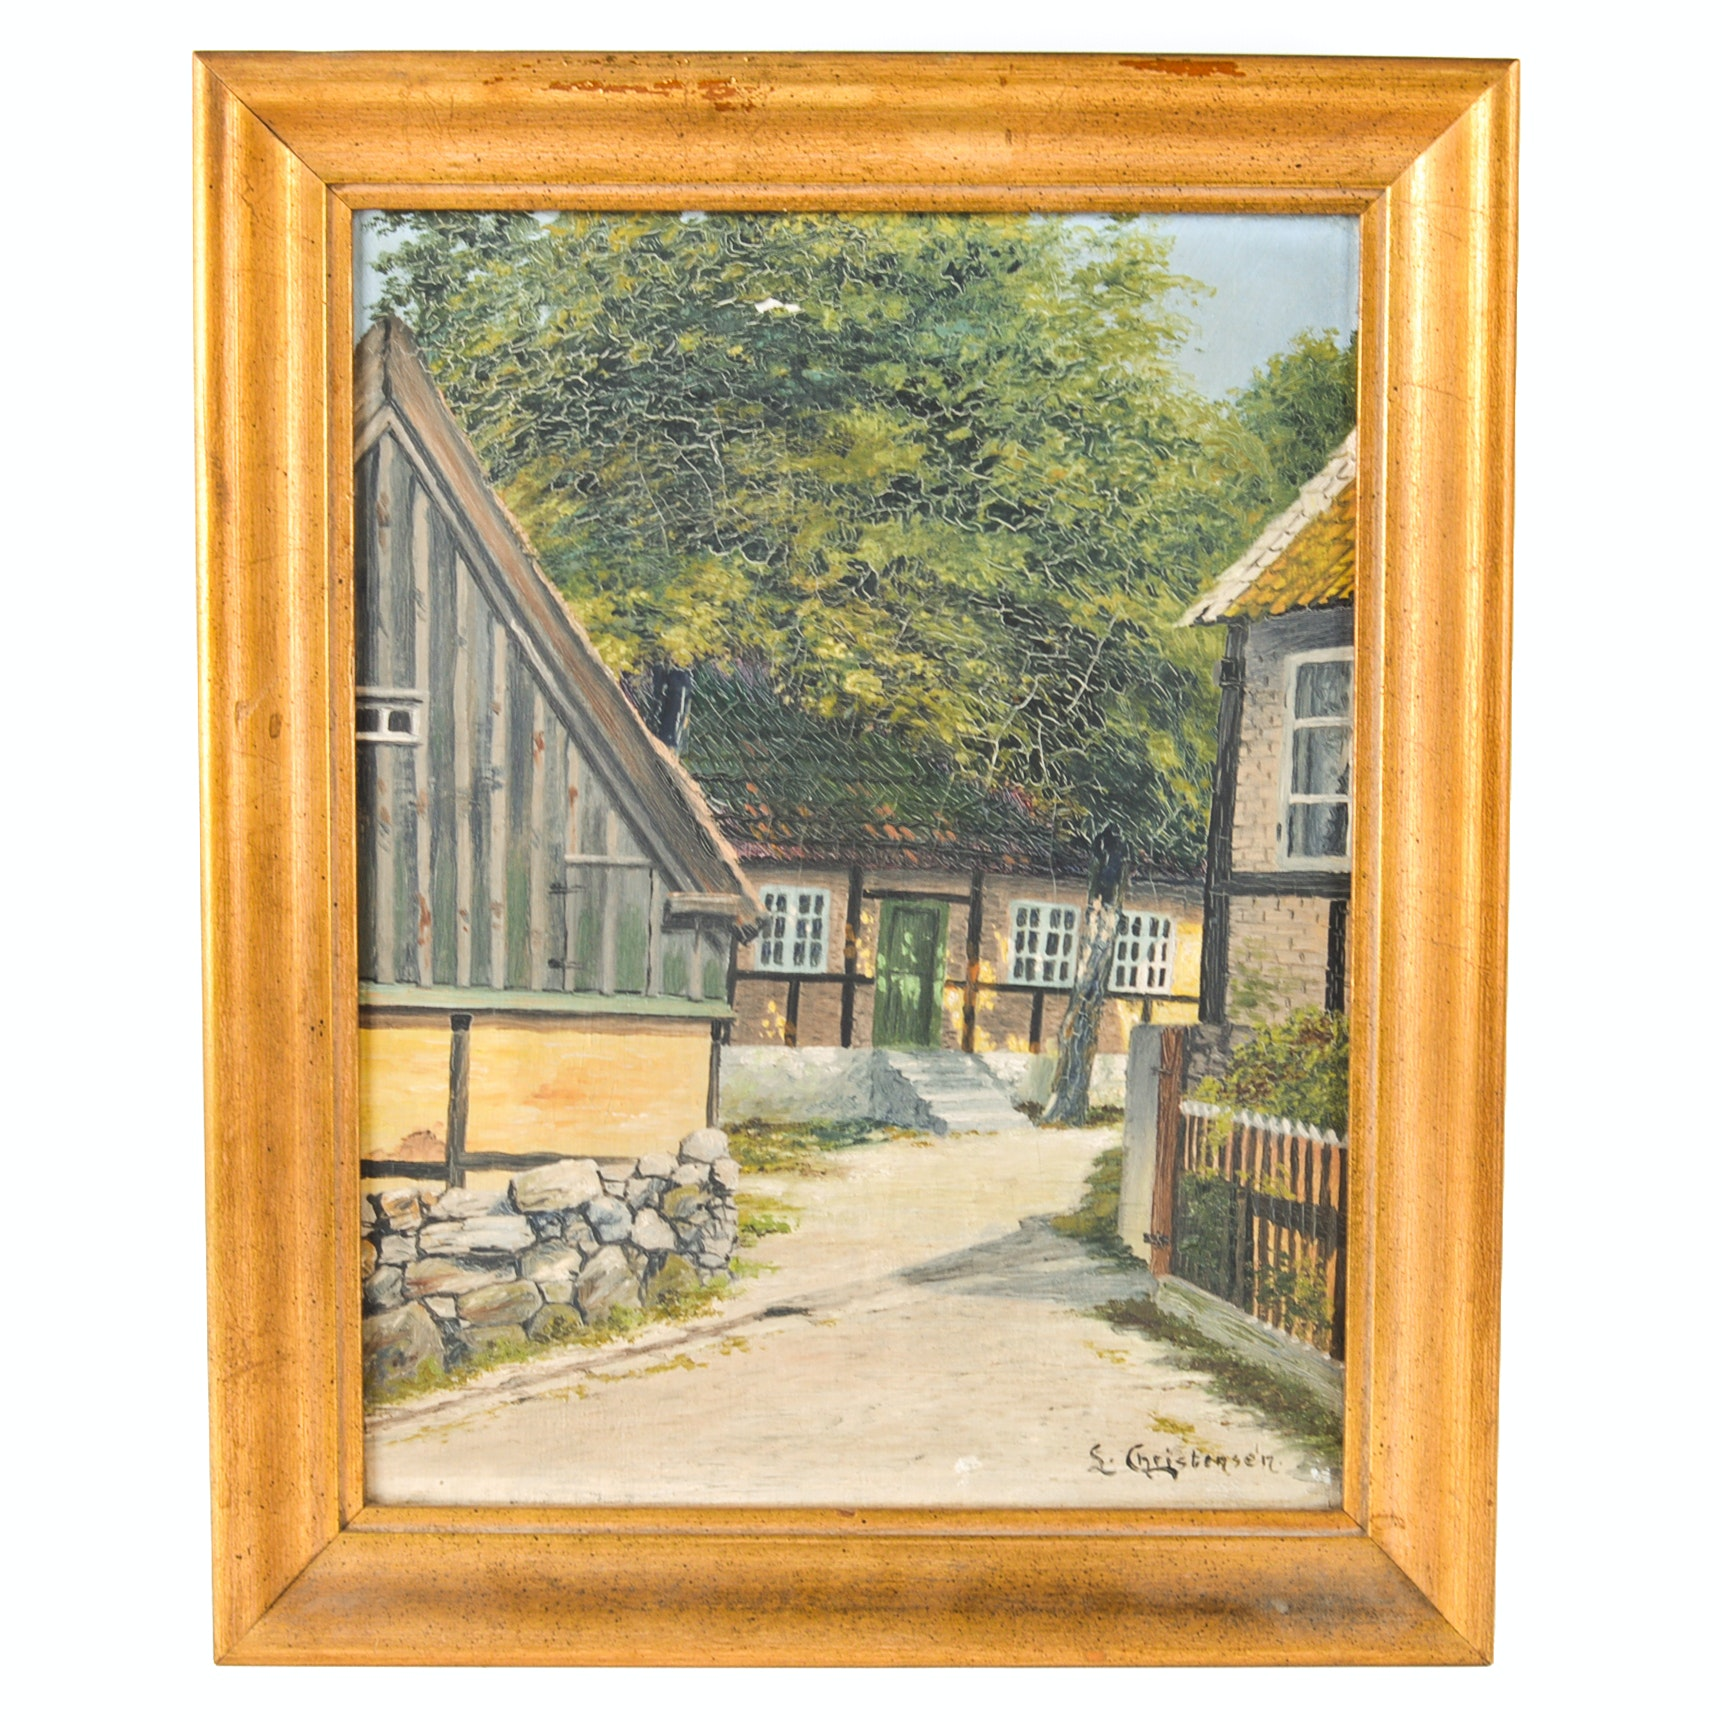 S. Christensen Oil on Canvas Painting of English Cottages